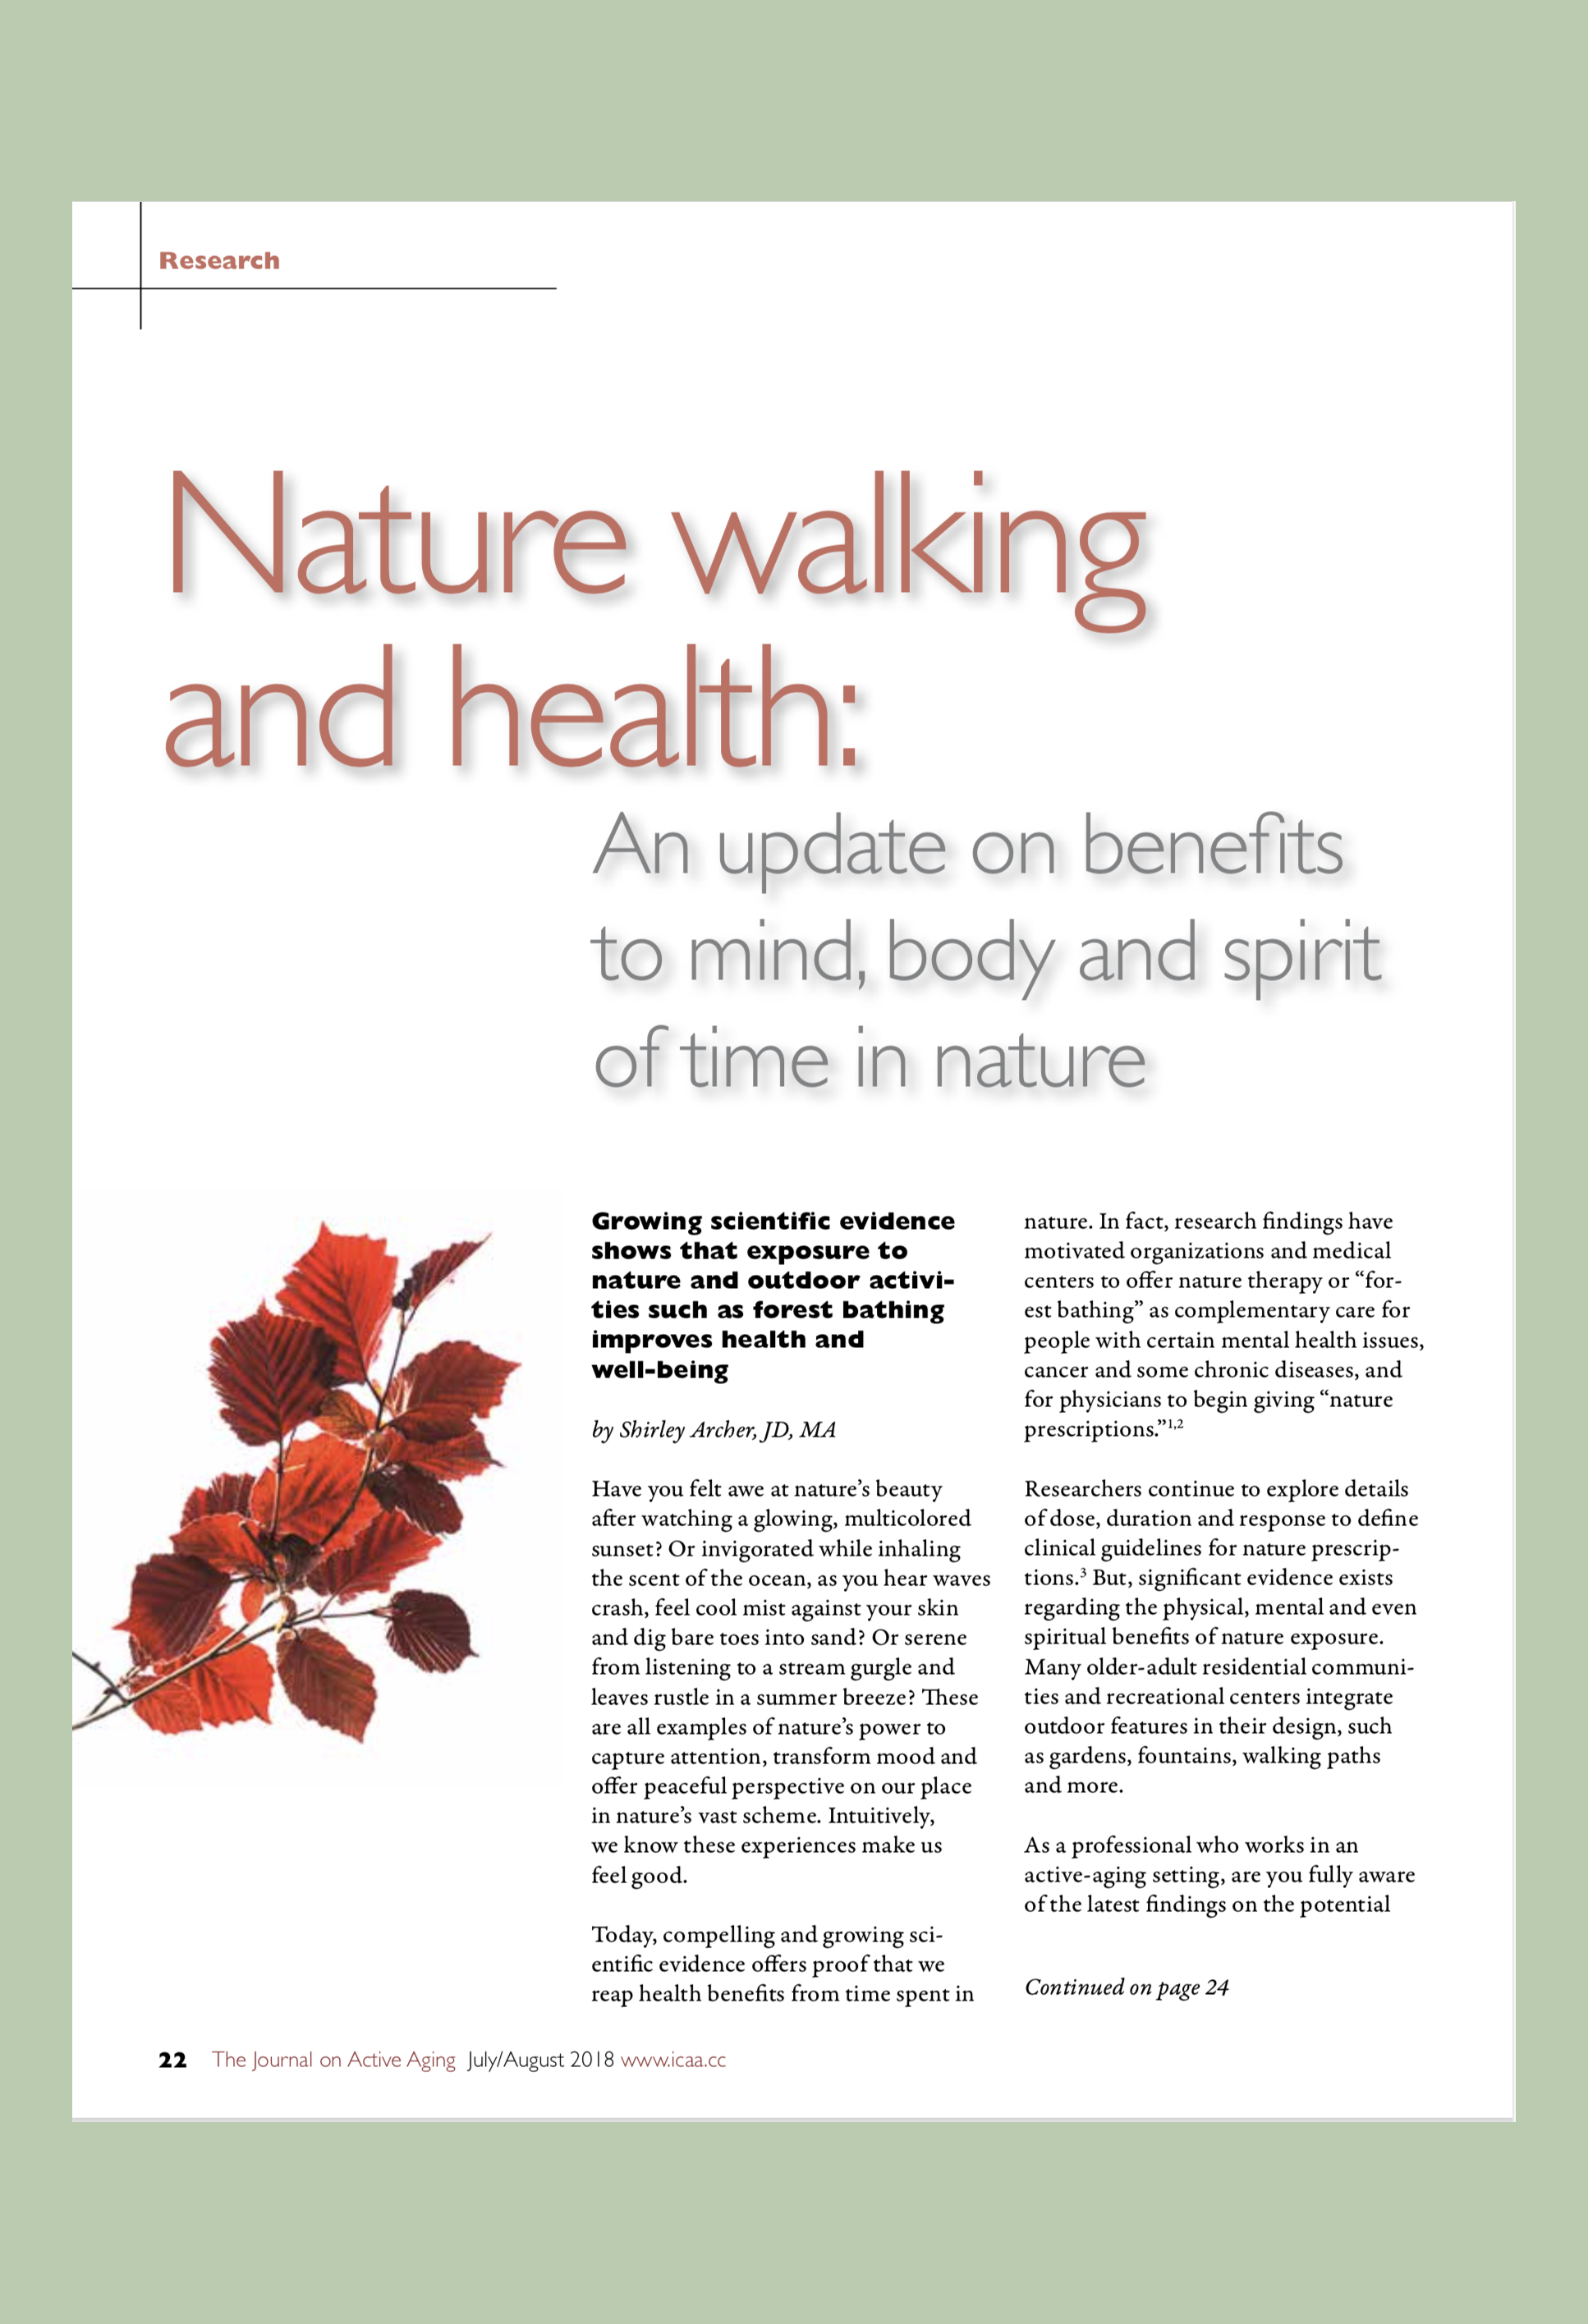 Nature Walking and Health article Image copy.png